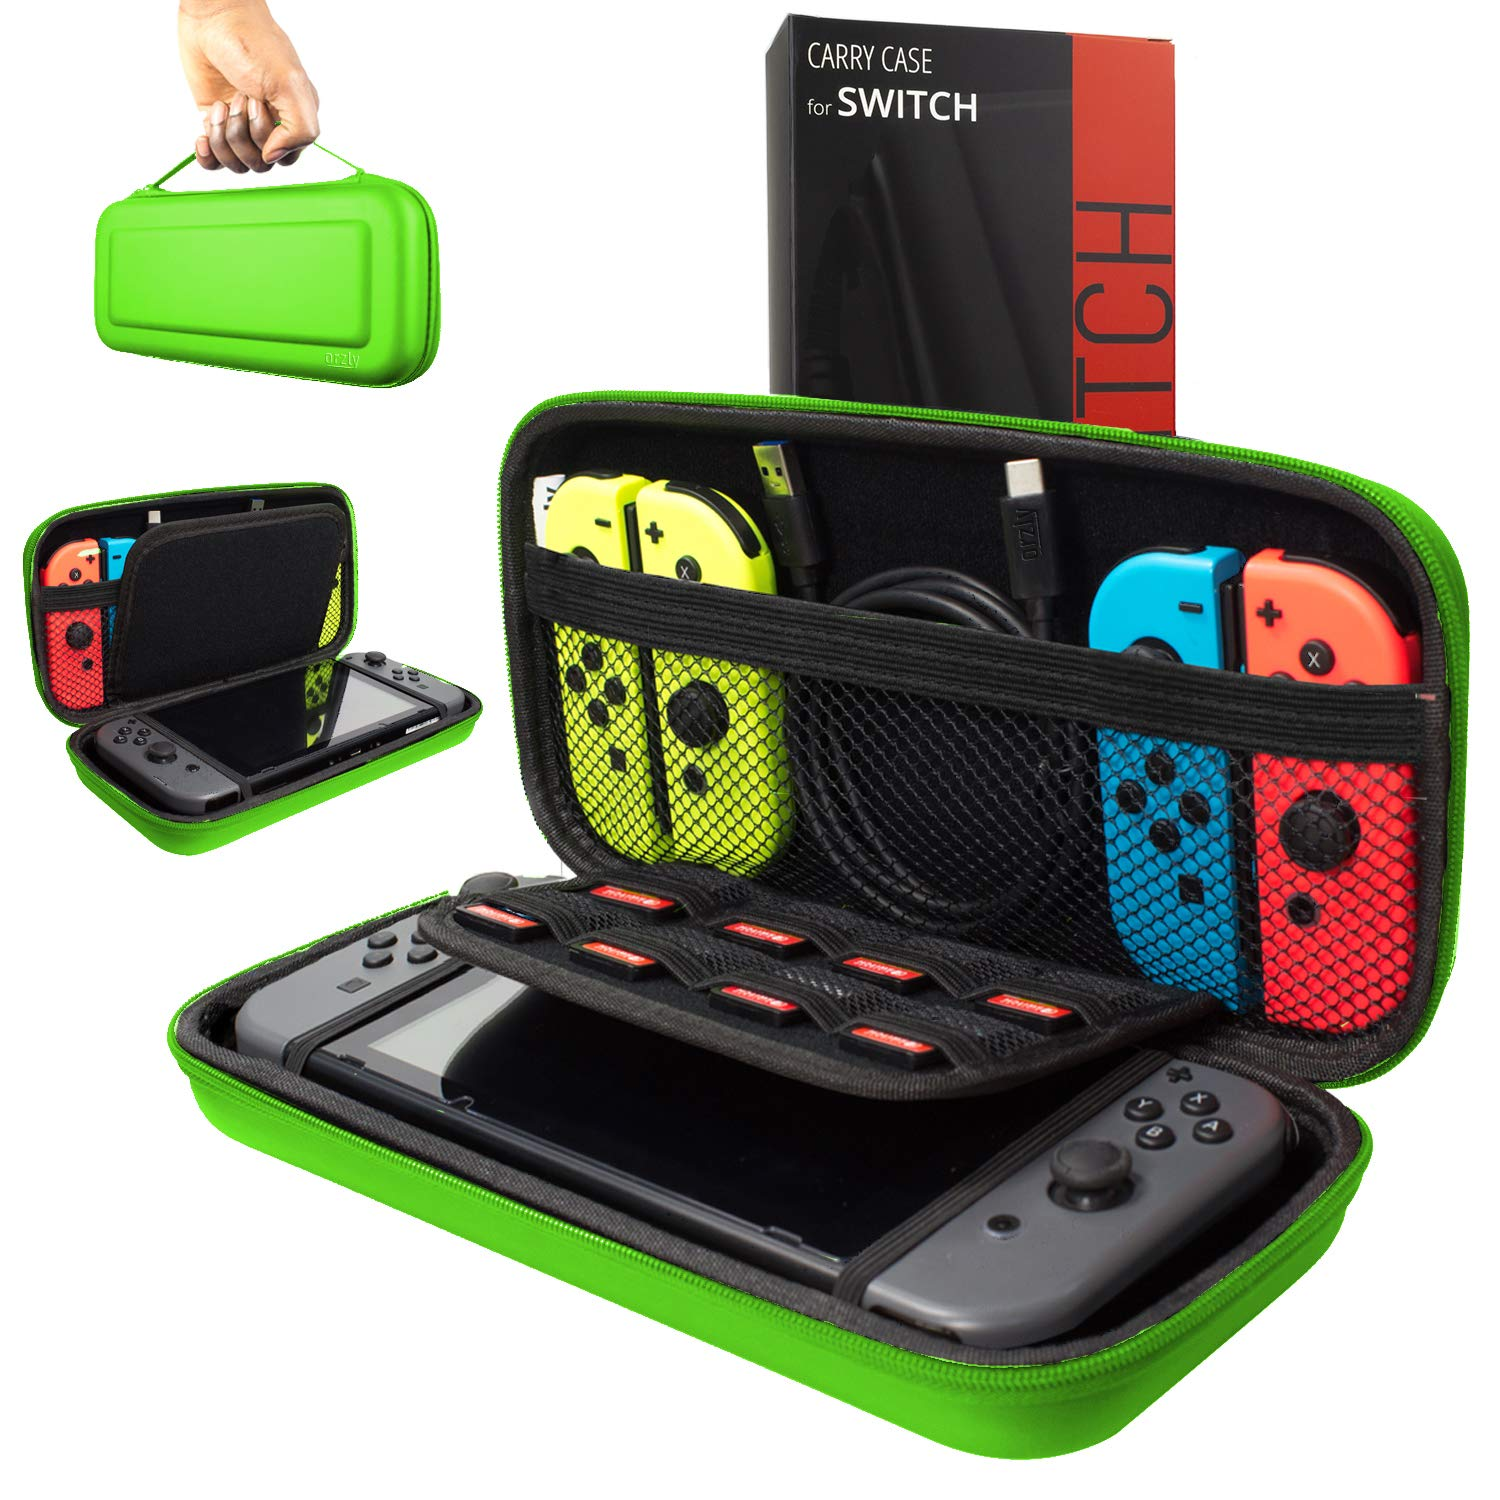 Orzly Carry Case Compatible with Nintendo Switch, Green (Case Only - Video Games & Console are NOT Included) product image